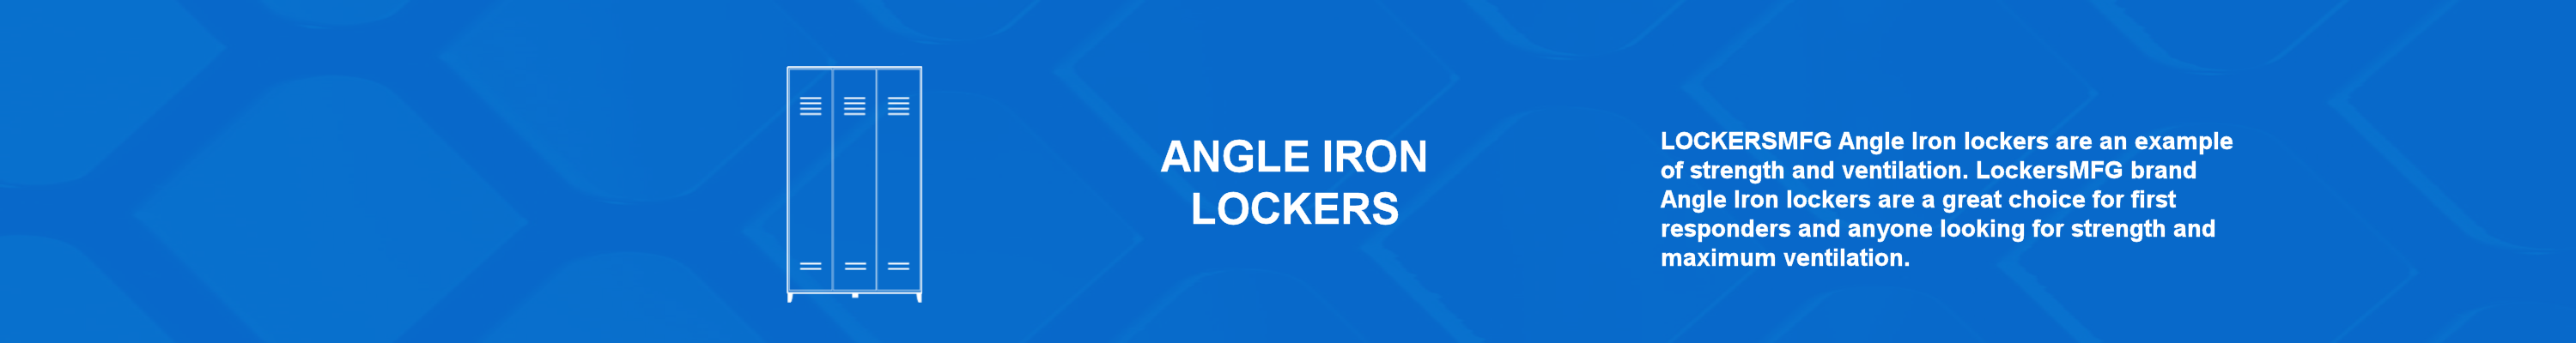 Angle Iron DiamondBackground